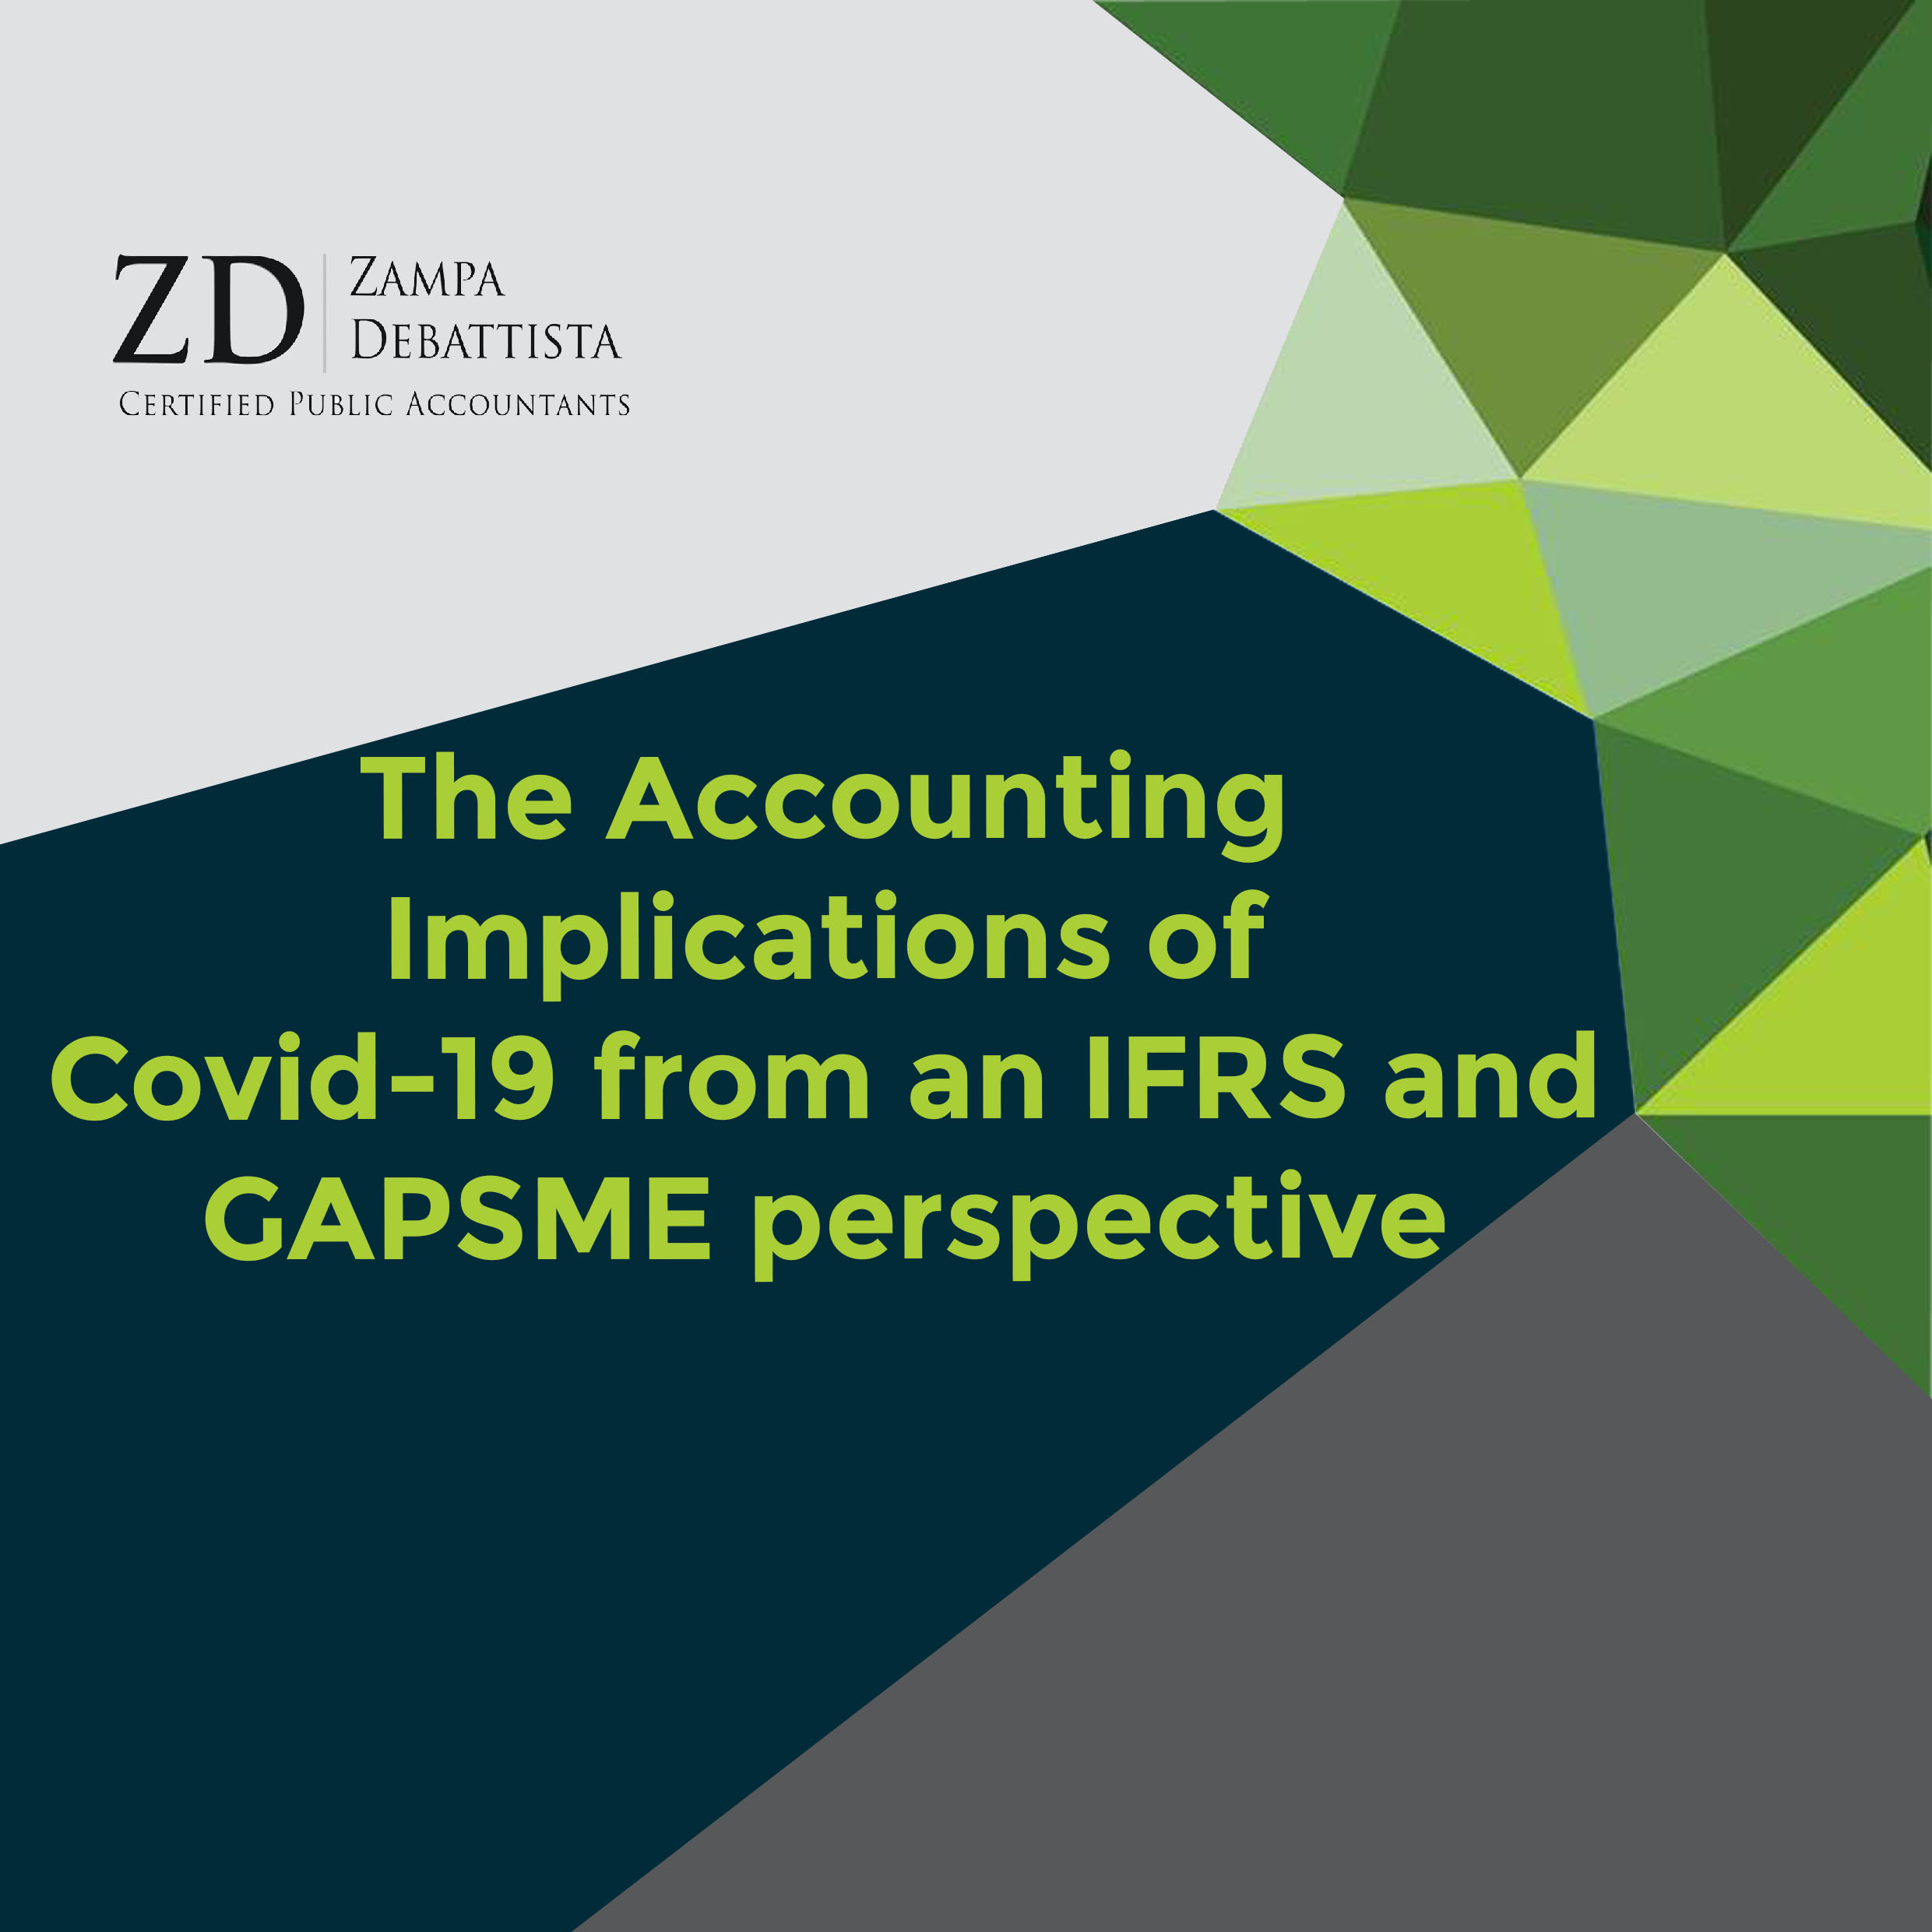 The Accounting Implications of Covid-19 from an IFRS and GAPSME perspective